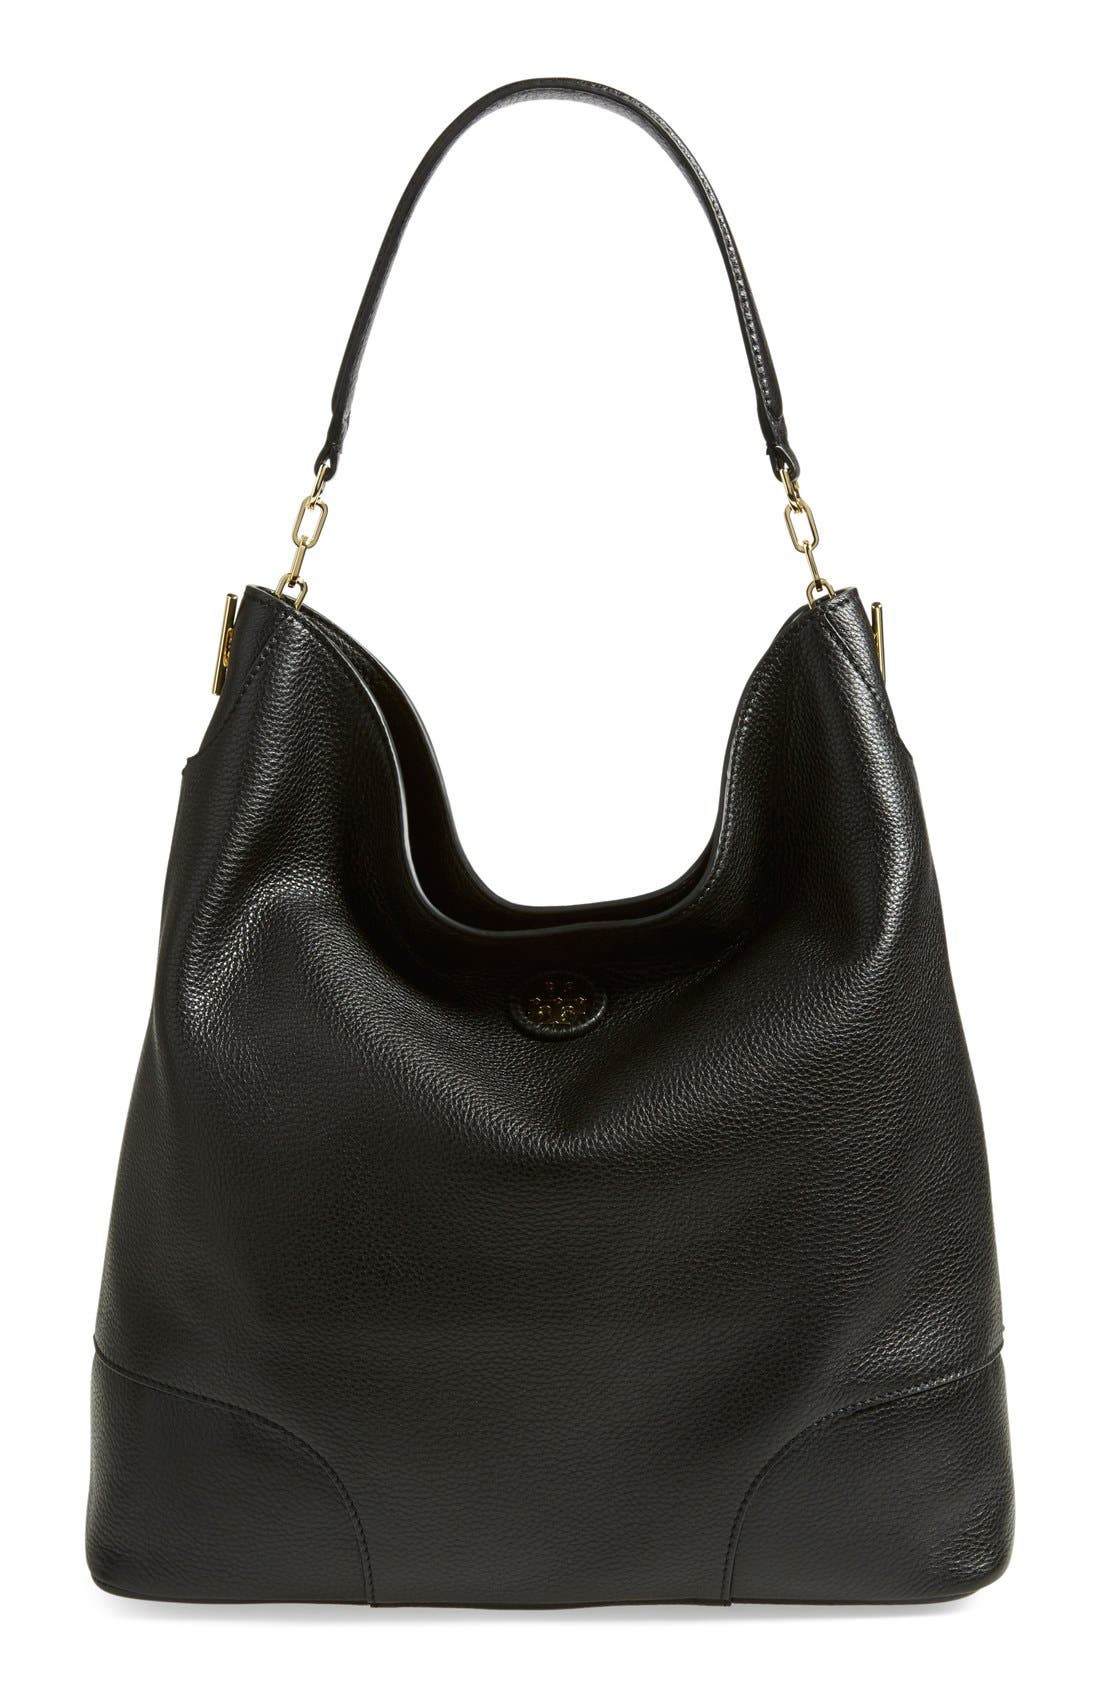 TORY BURCH, Leather Hobo, Main thumbnail 1, color, 001